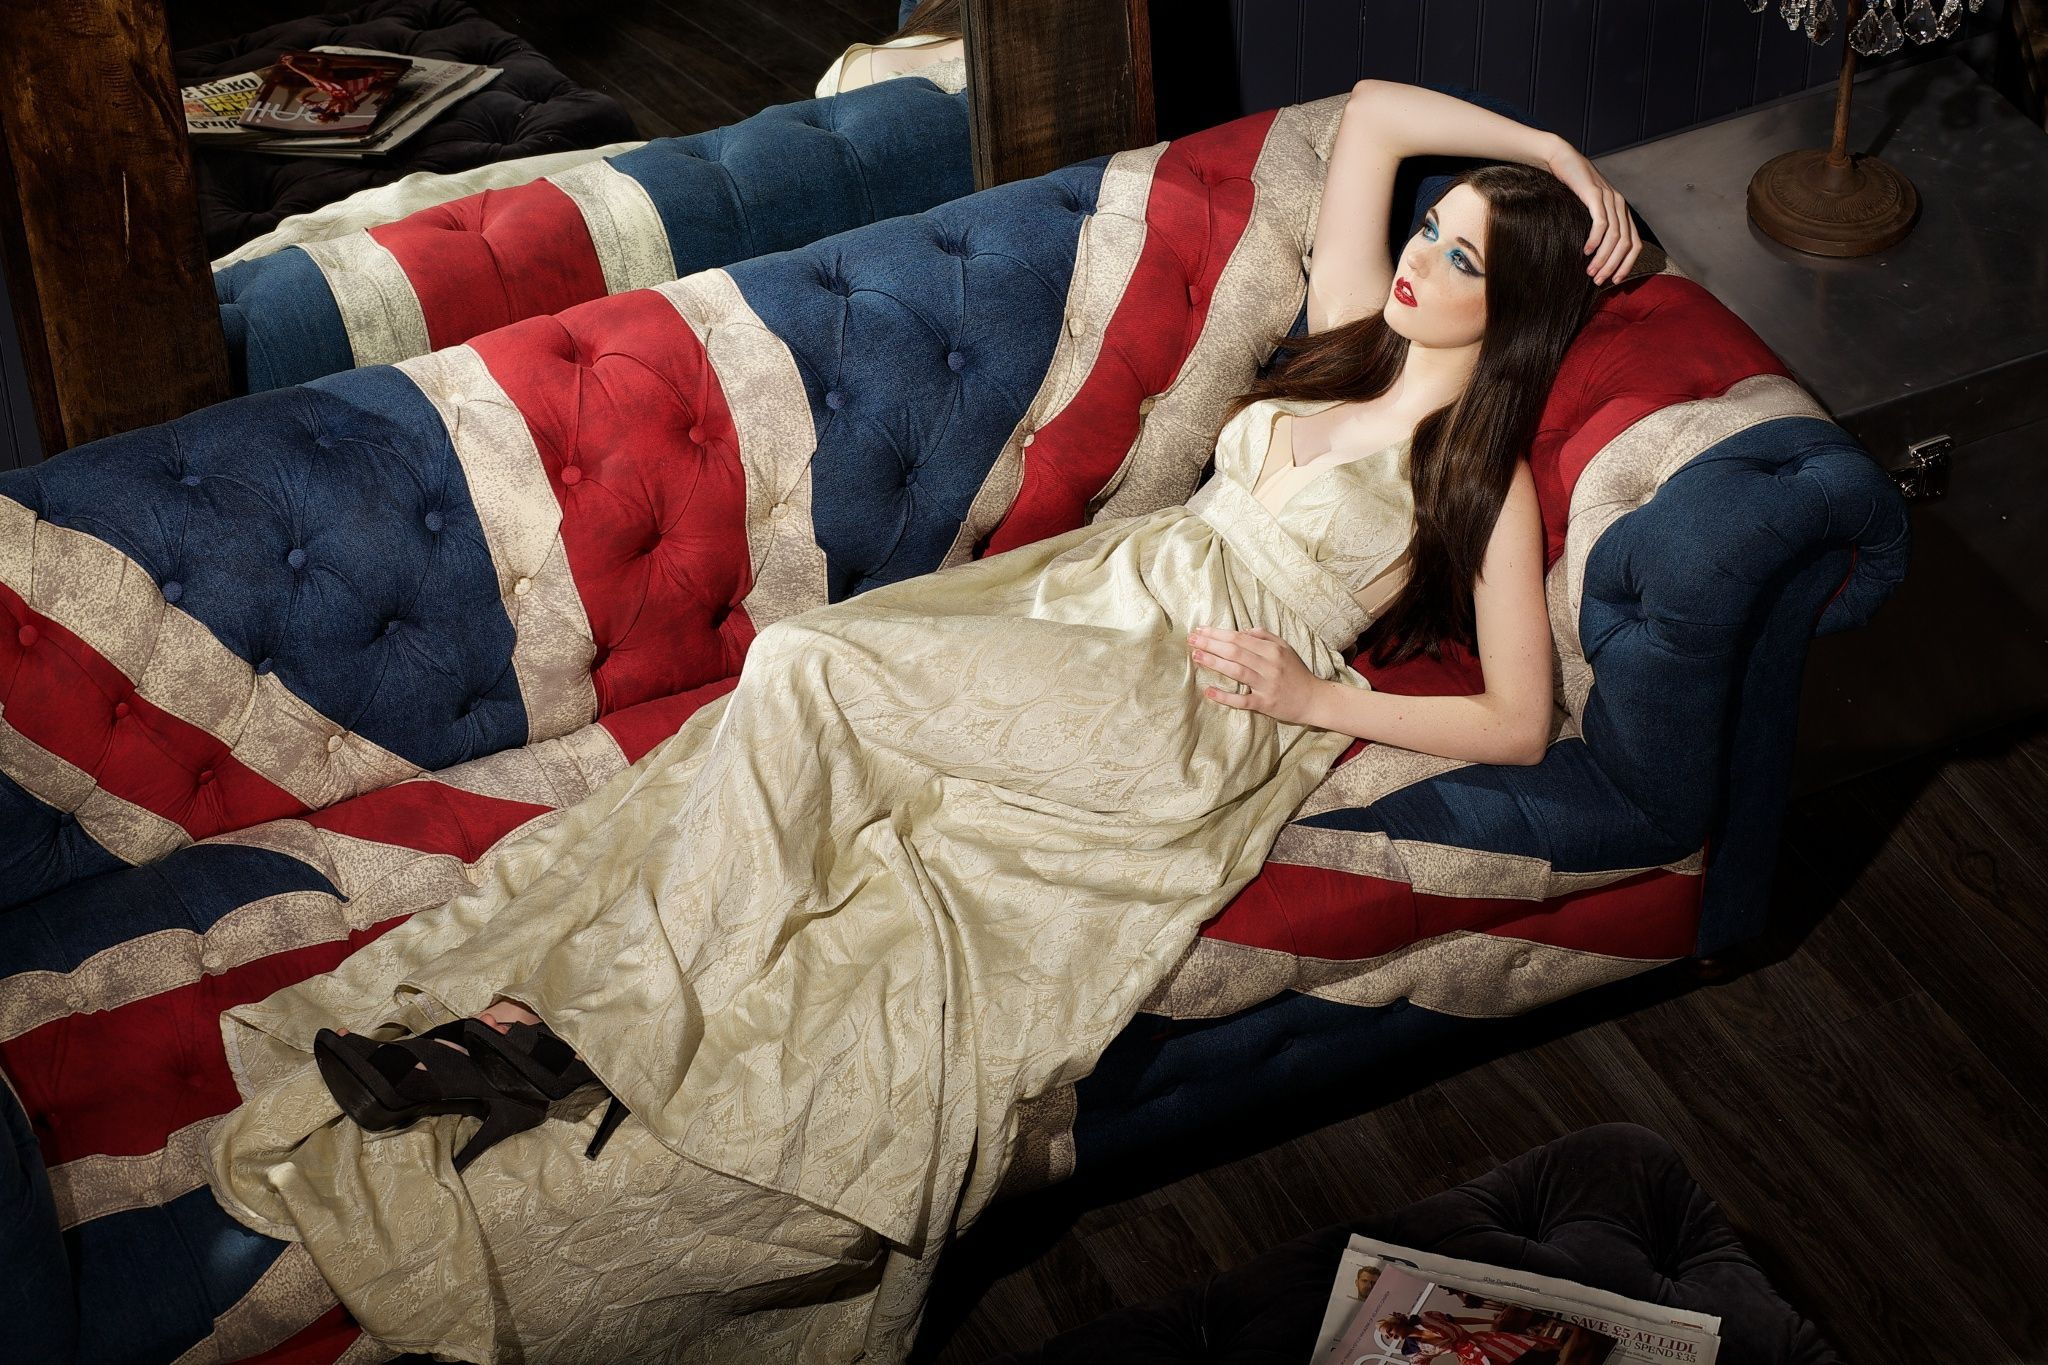 https://500px.com/.  Photograph Lounging in Style by Tim Lingley on 500px